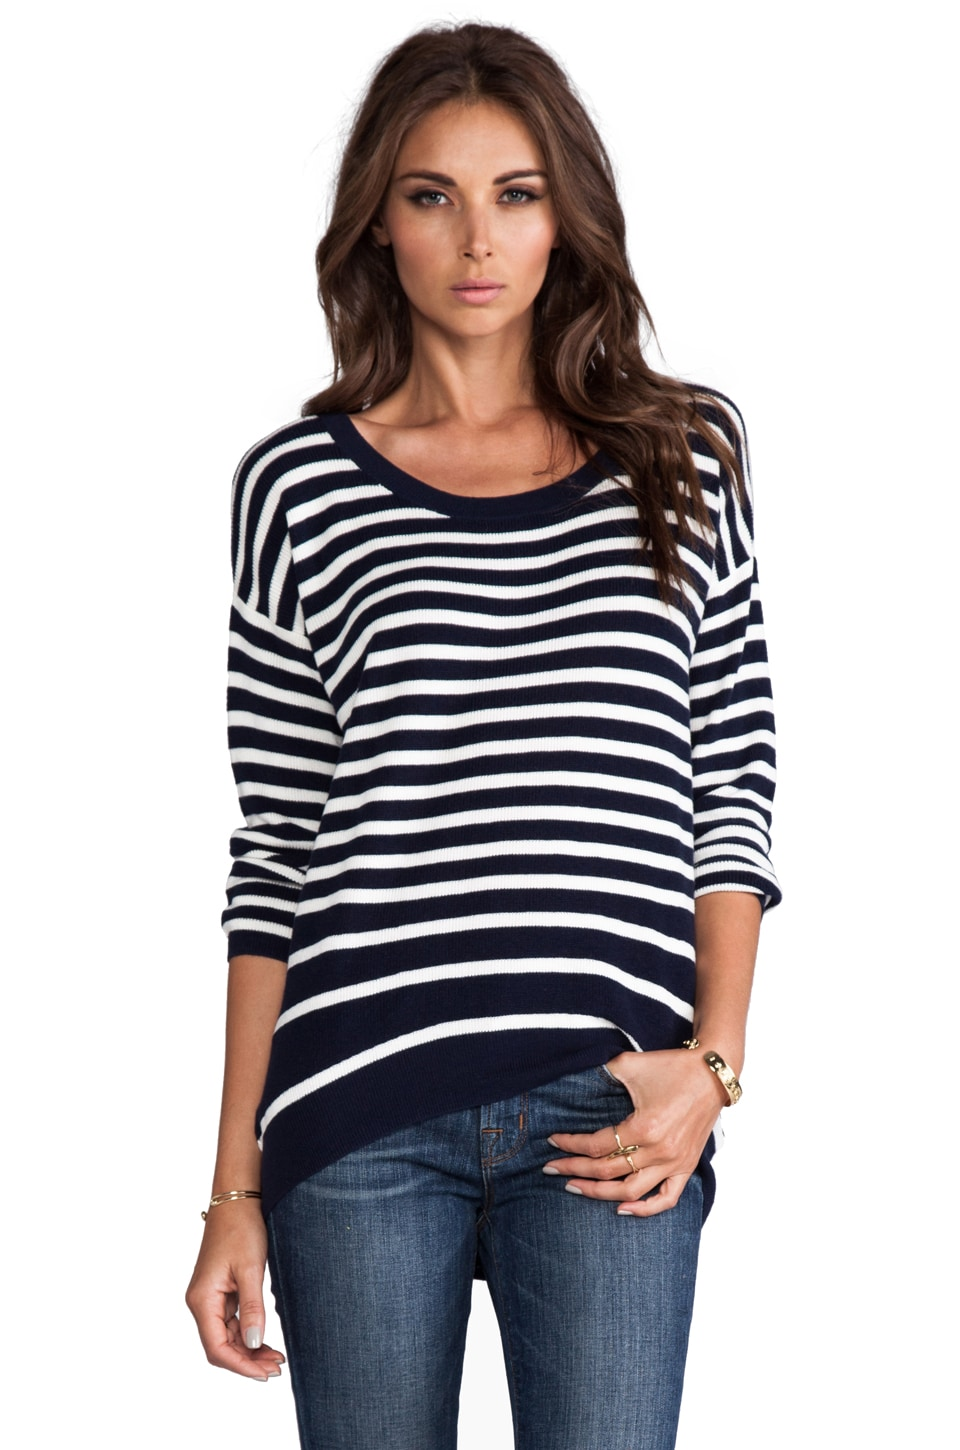 Juicy Couture Peyton Stripe Sweater in Regal/Angel